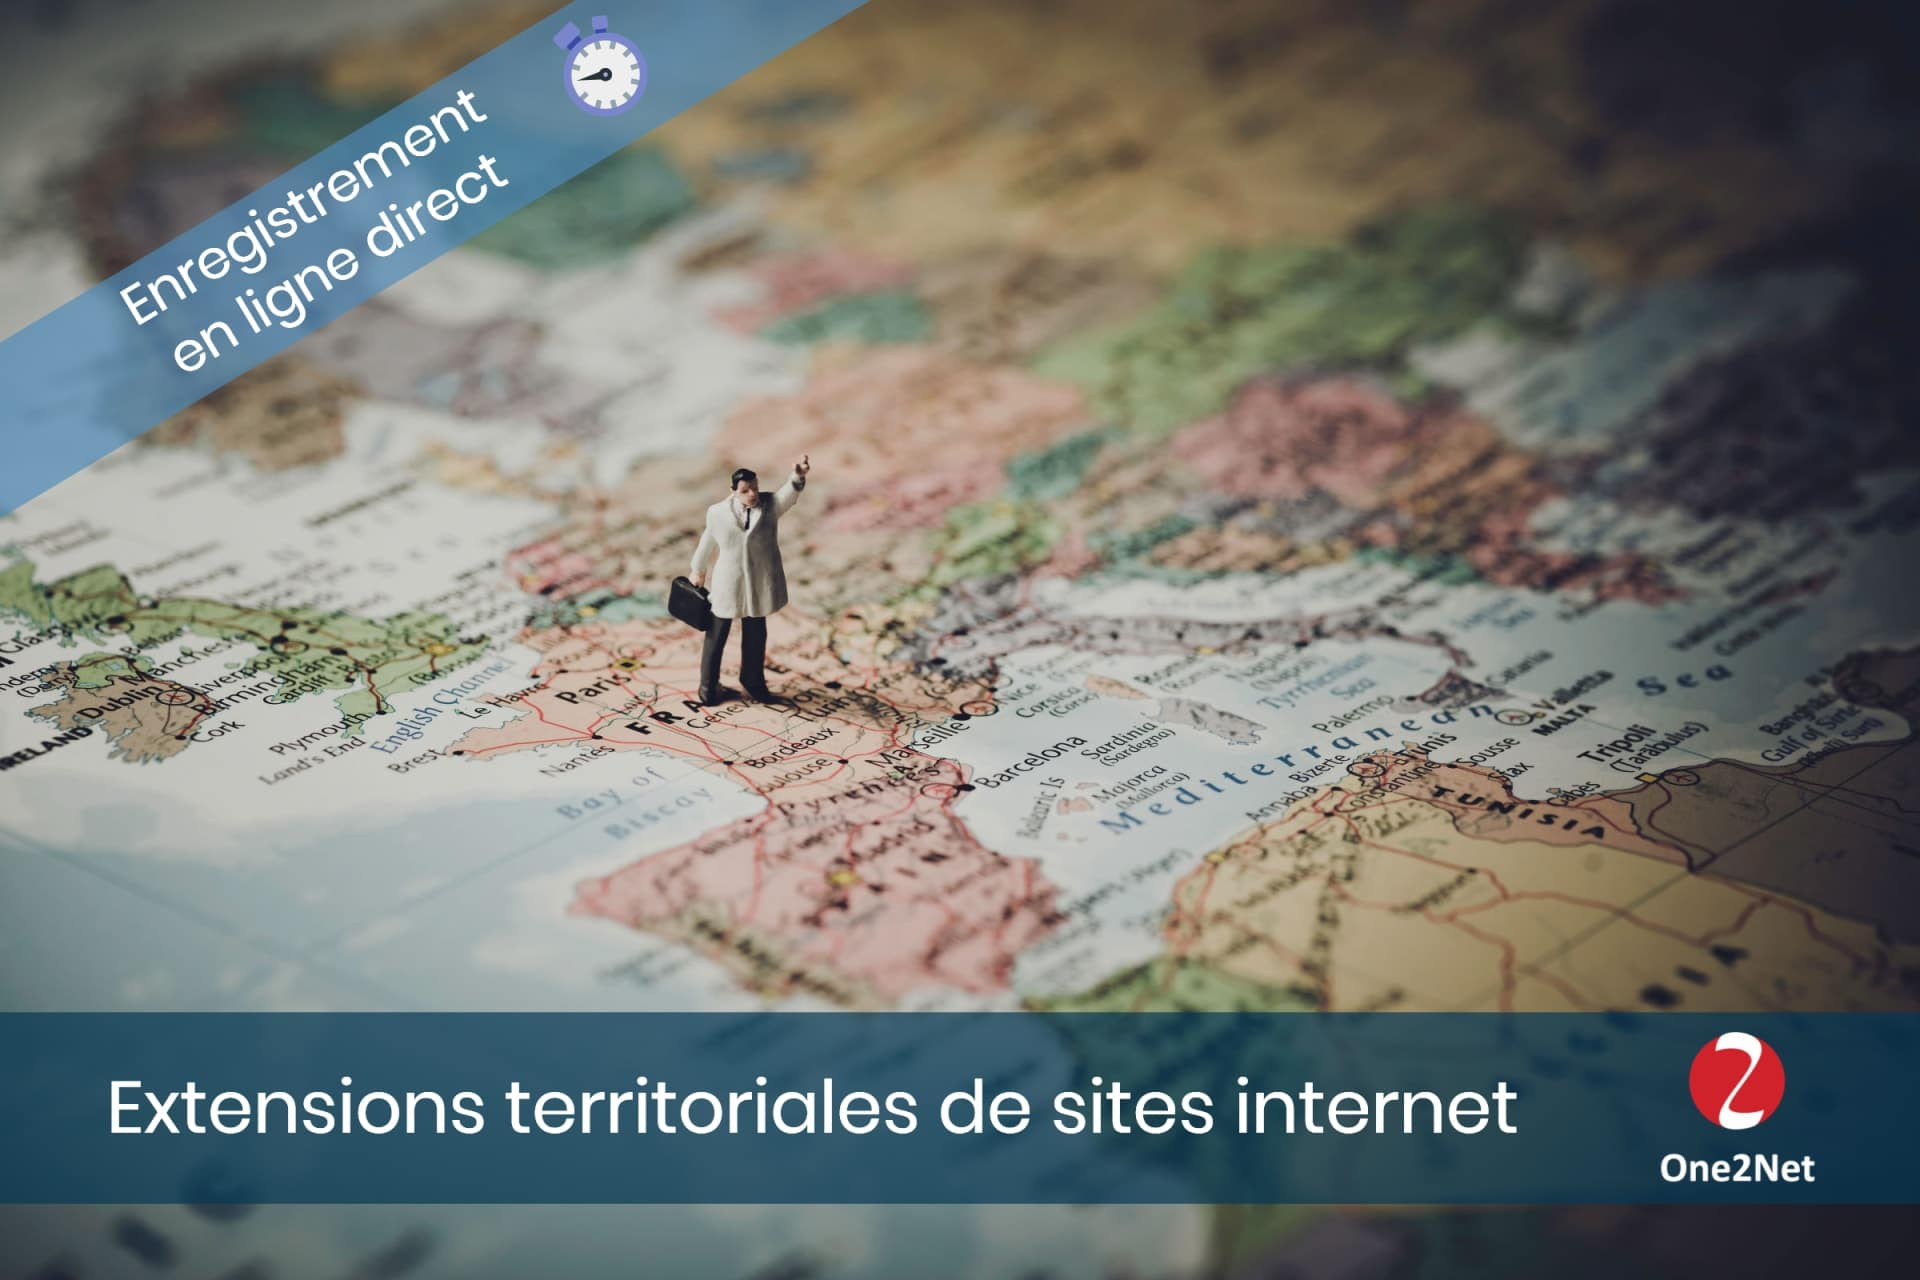 Extensions territoriales de sites internet